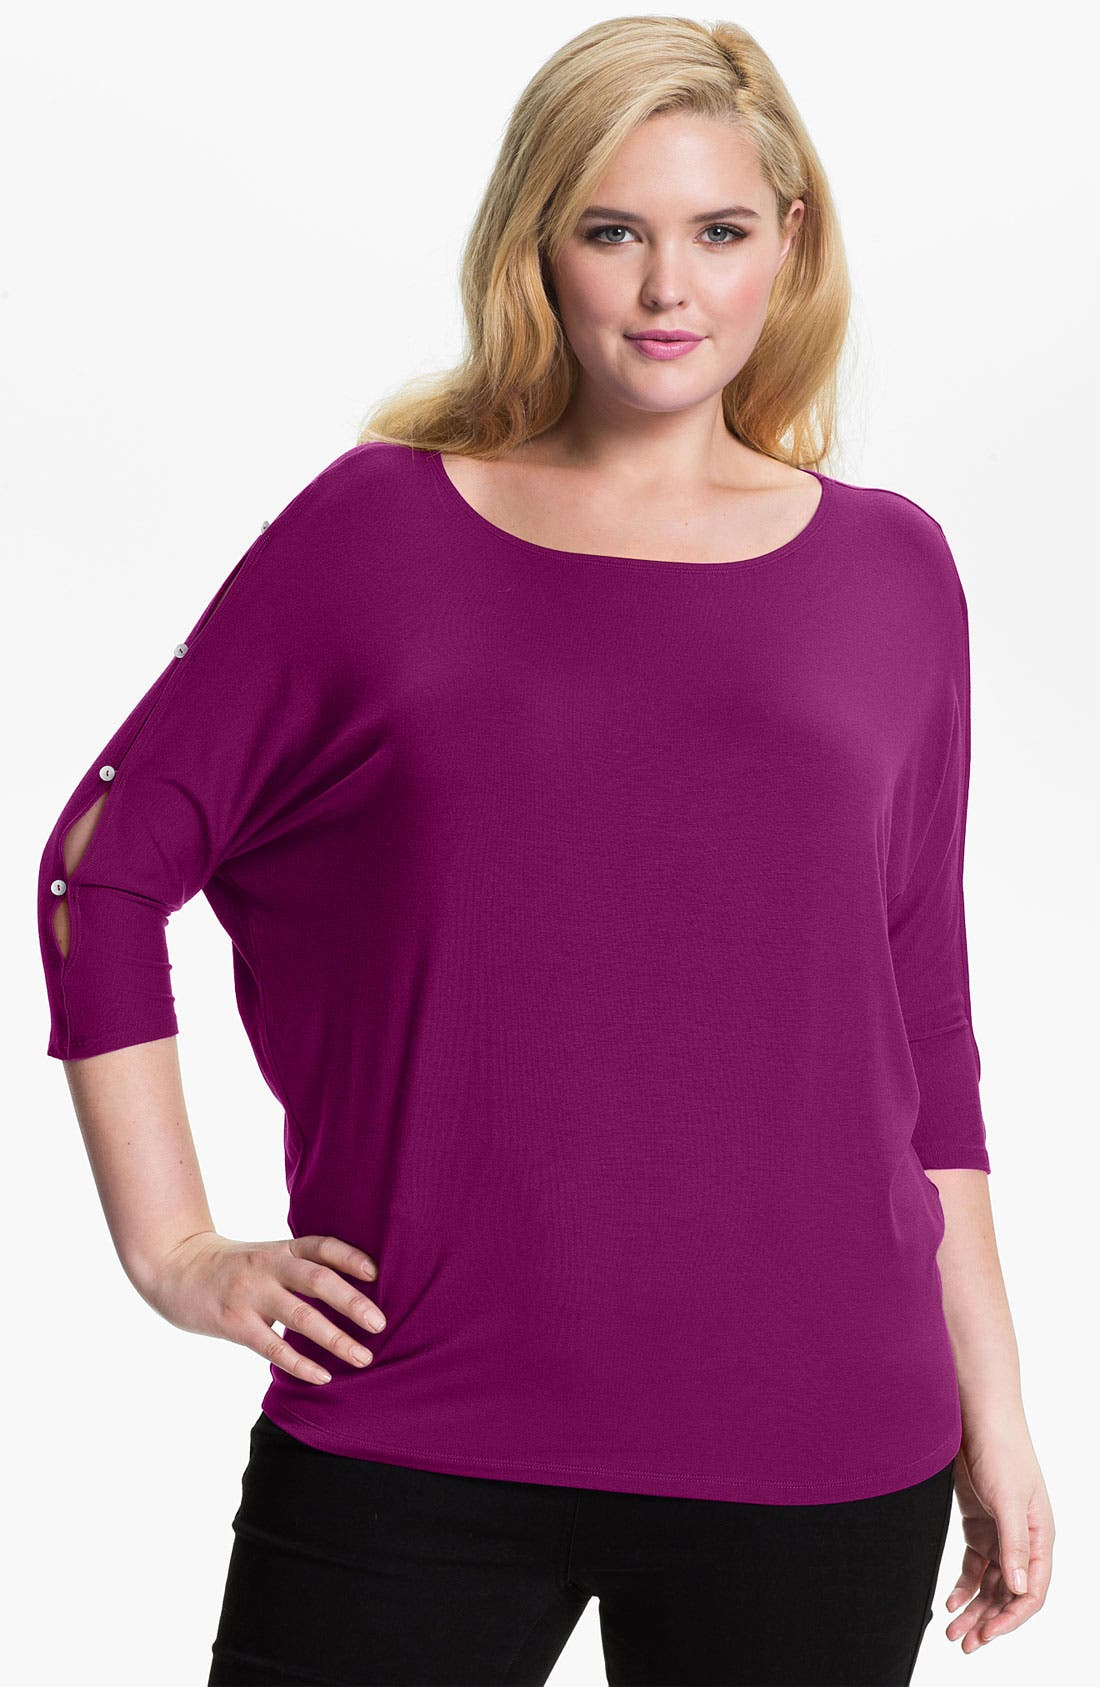 Alternate Image 1 Selected - Laila Jayde Button Detail Dolman Sleeve Top (Plus)